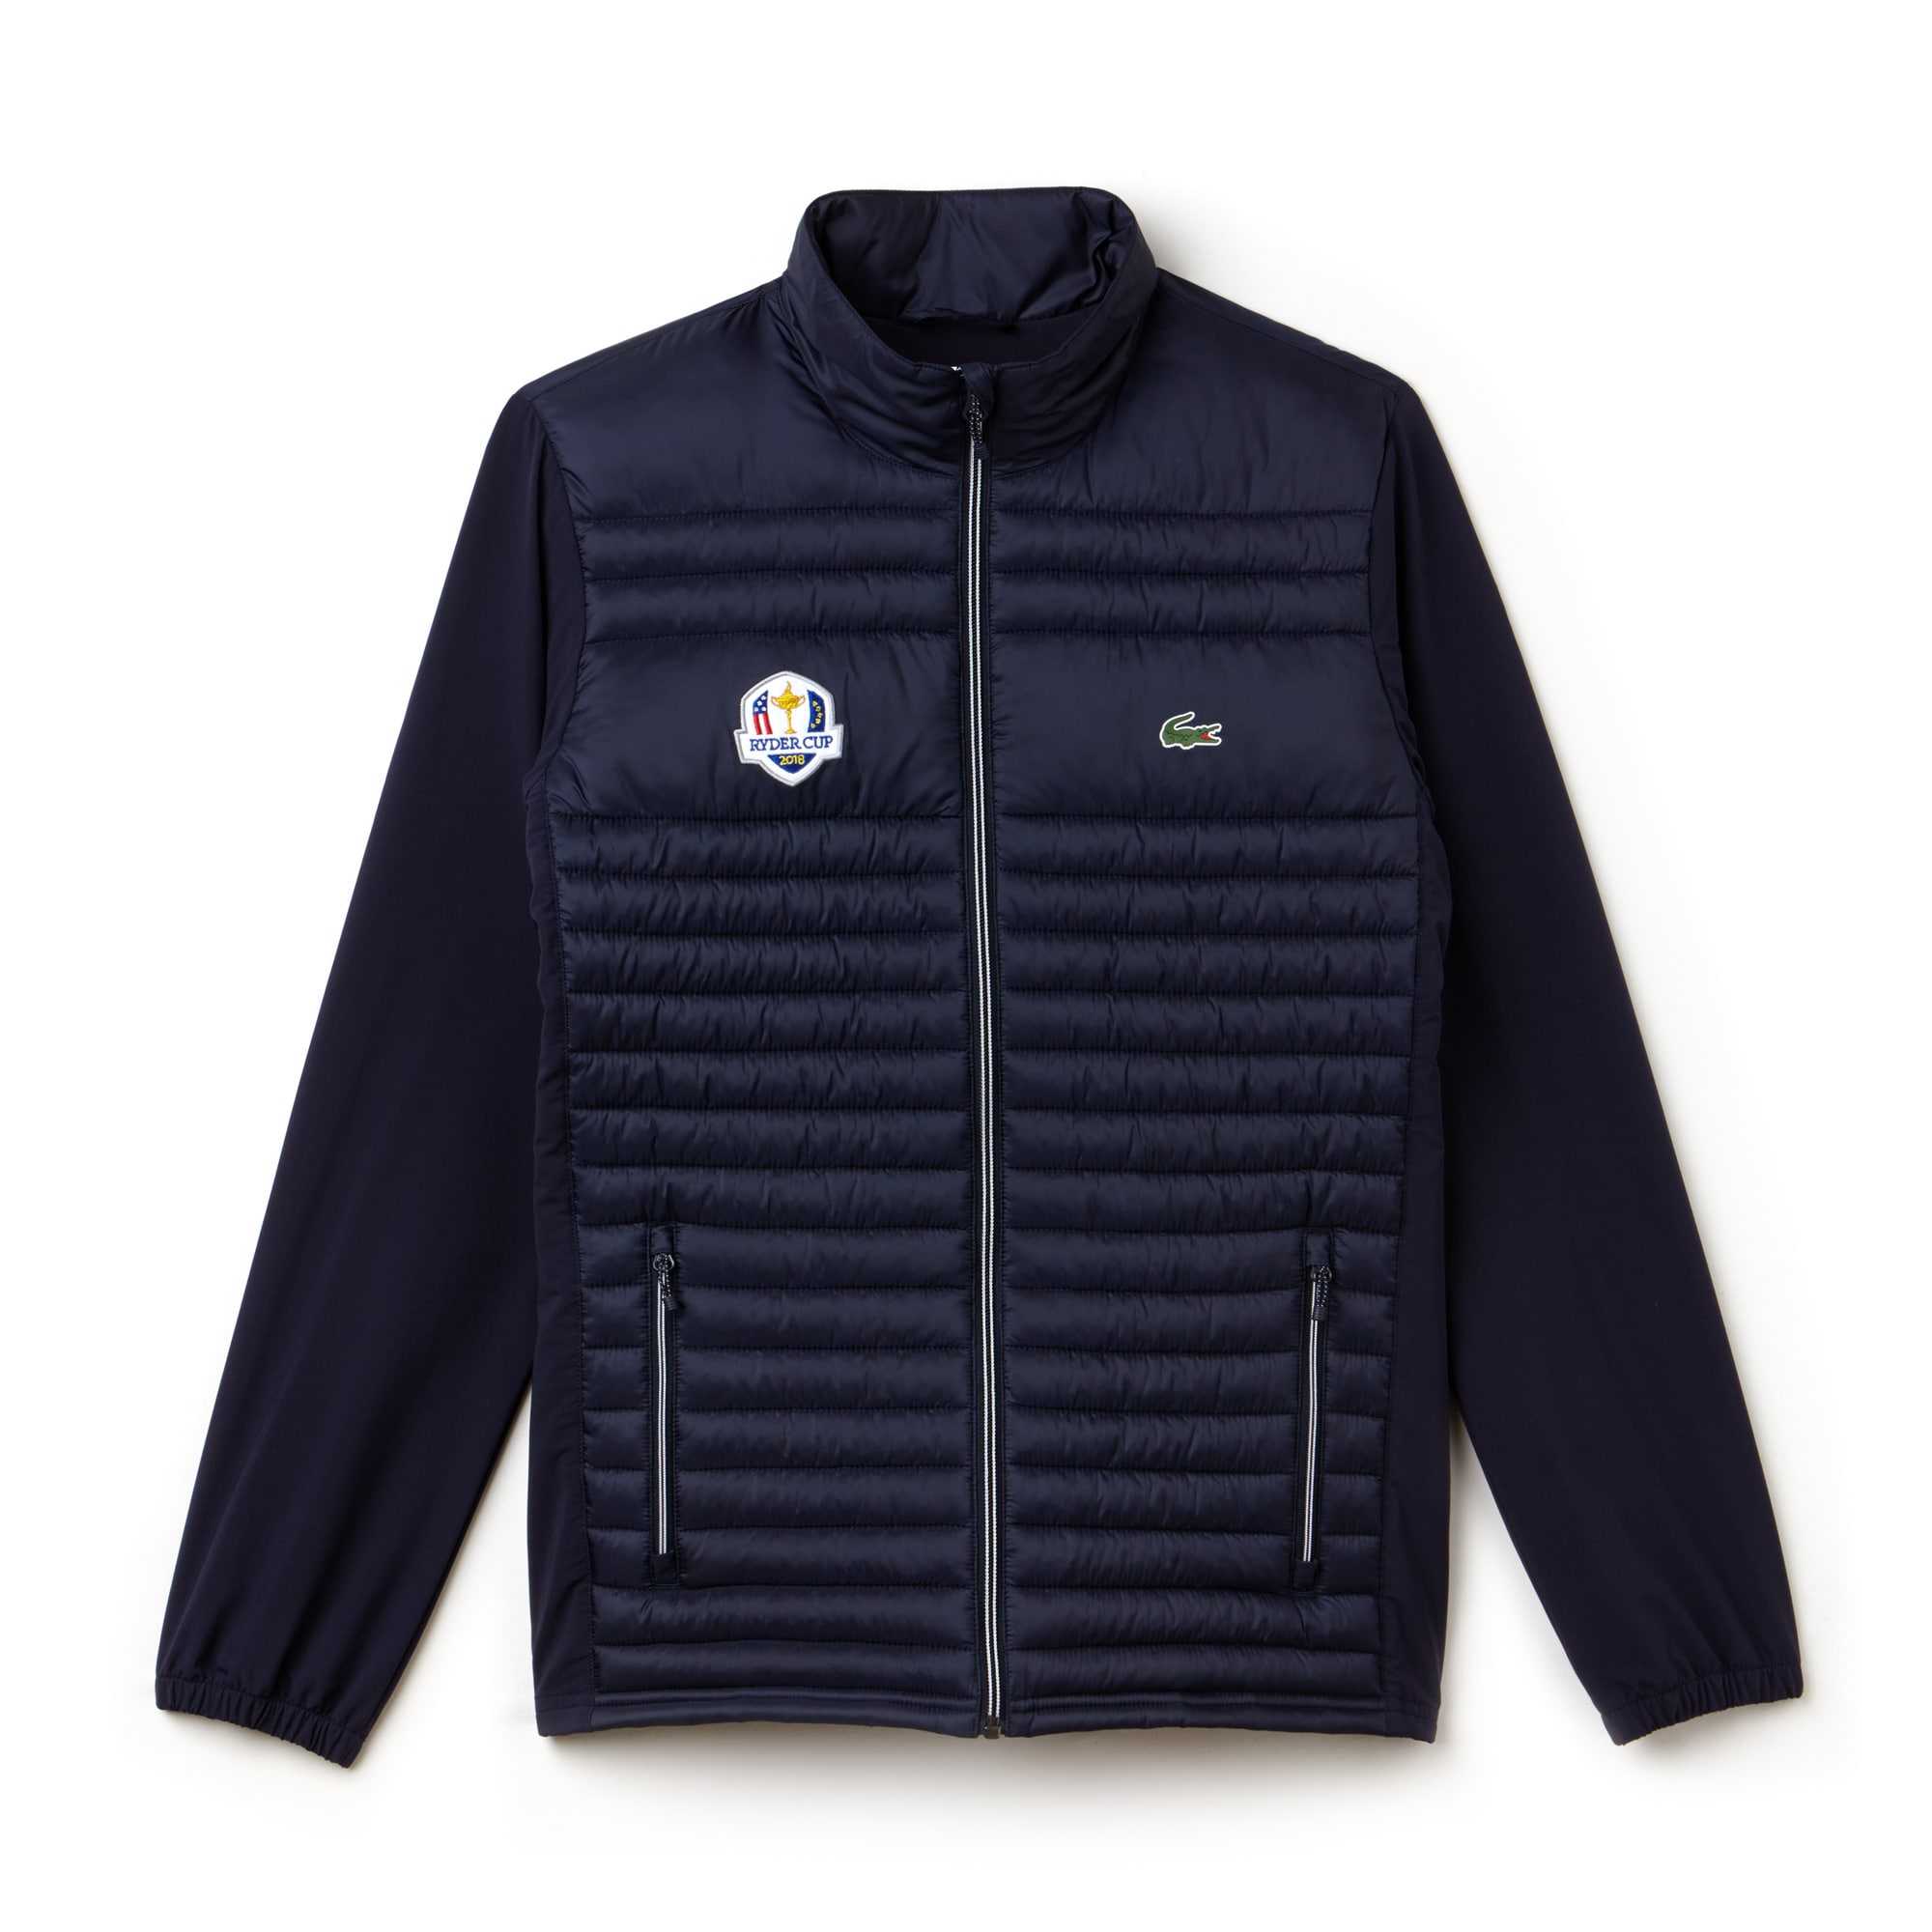 Men's Lacoste SPORT Ryder Cup Edition Technical Quilted Golf Jacket